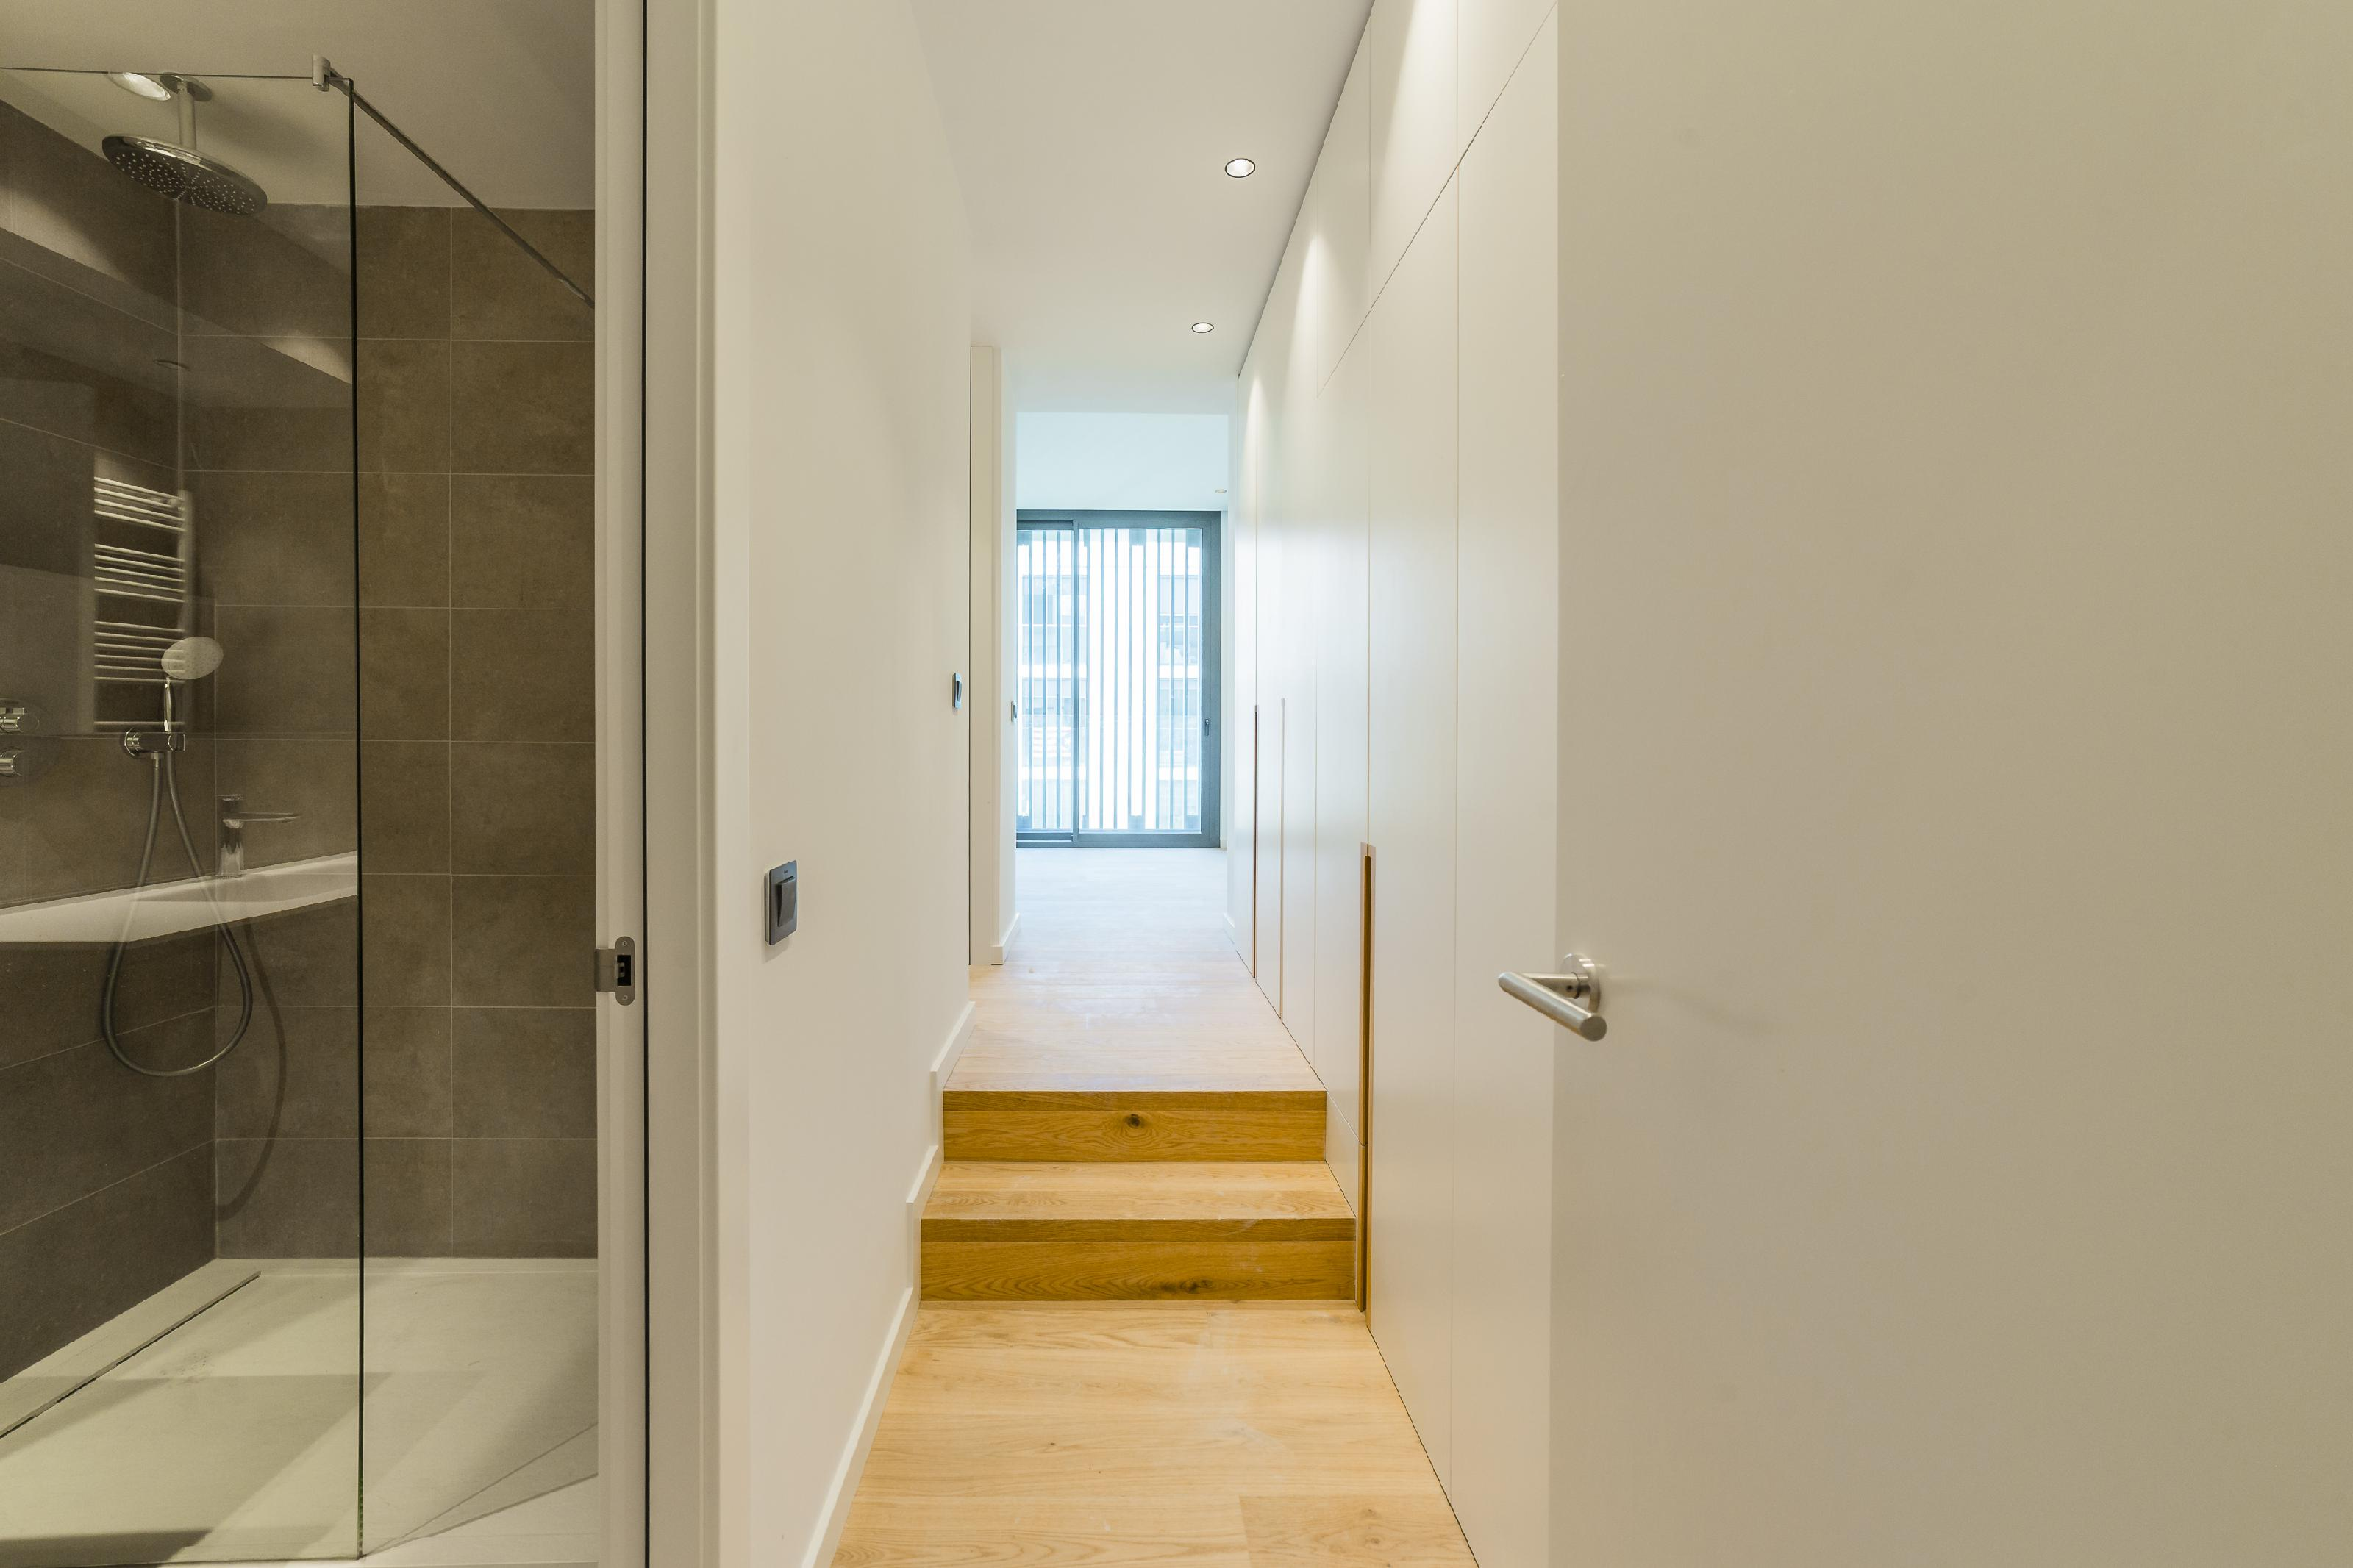 182474 Apartment for sale in Eixample, Old Left Eixample 12